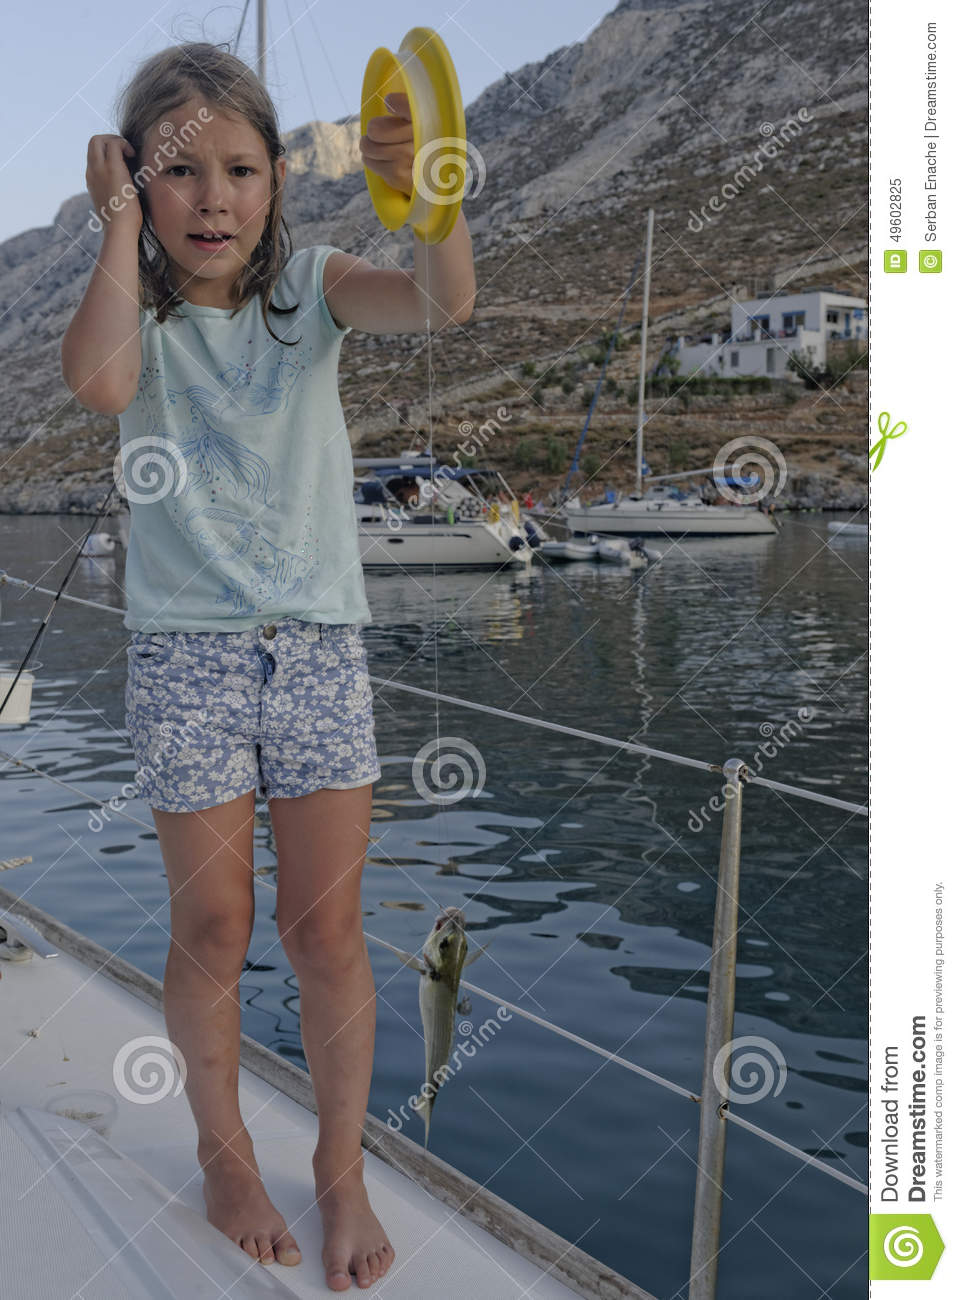 Girl Fishing From A Boat Stock Photo - Image: 49602825